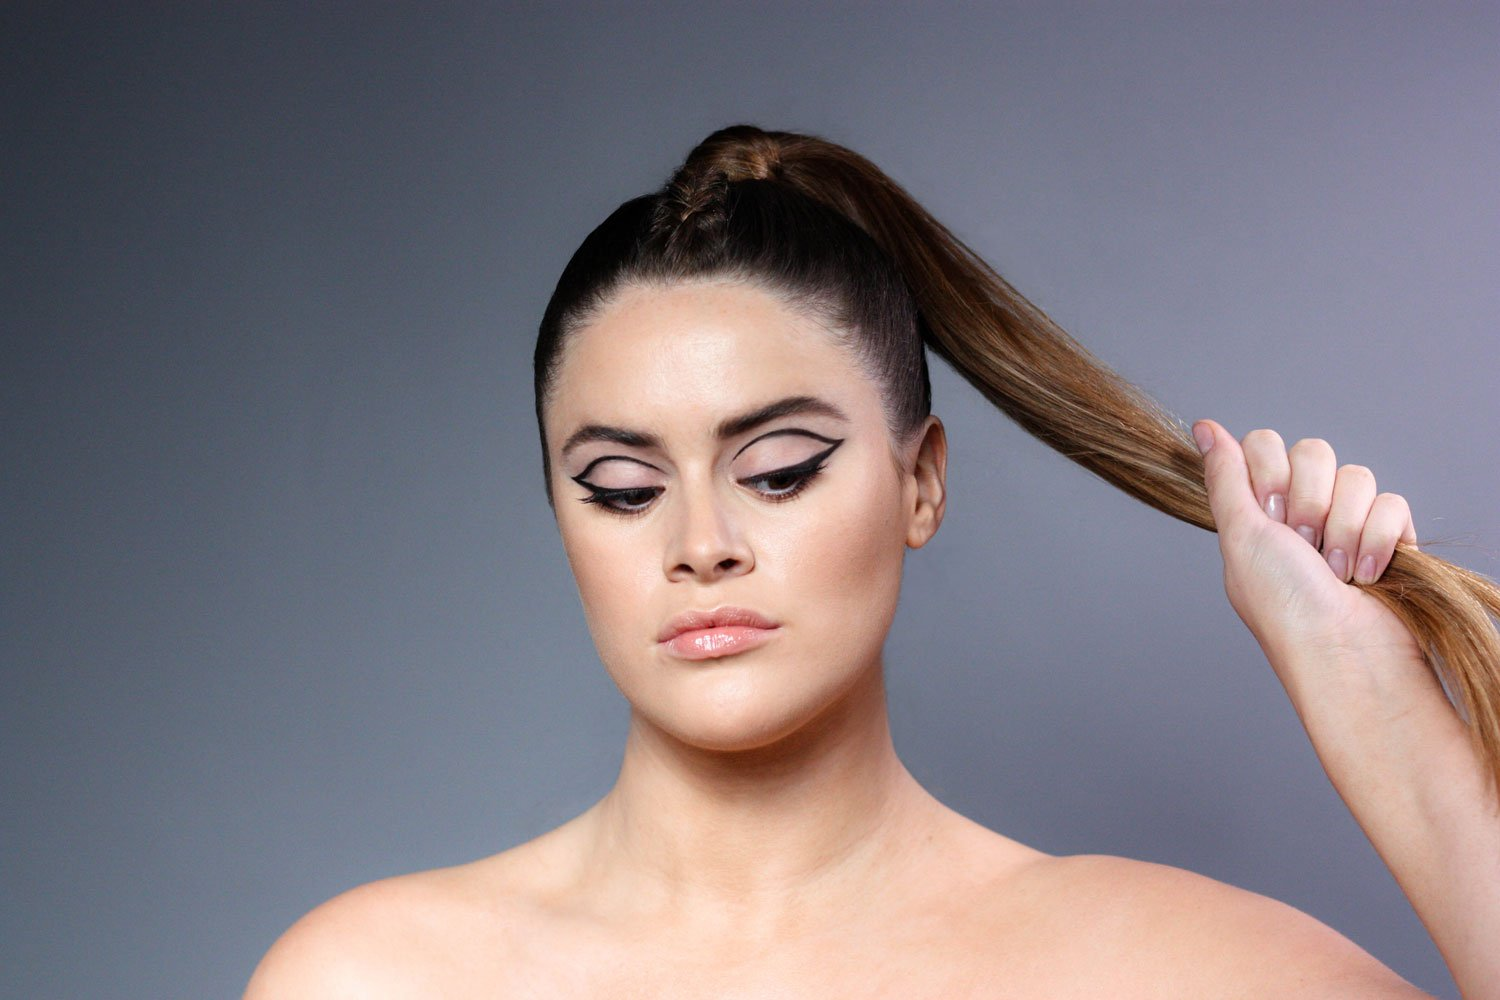 makeup photography at the lucy jayne makeup academy